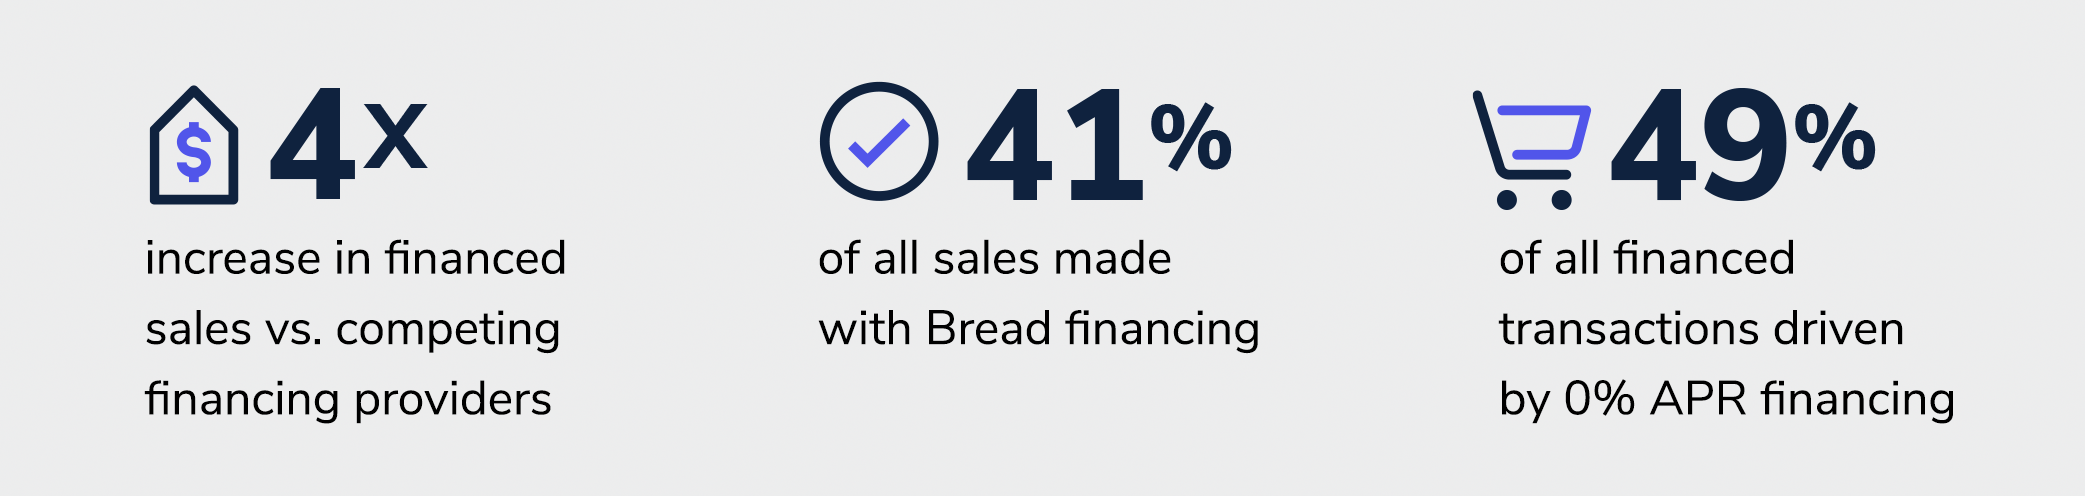 Eargo Bread case study results